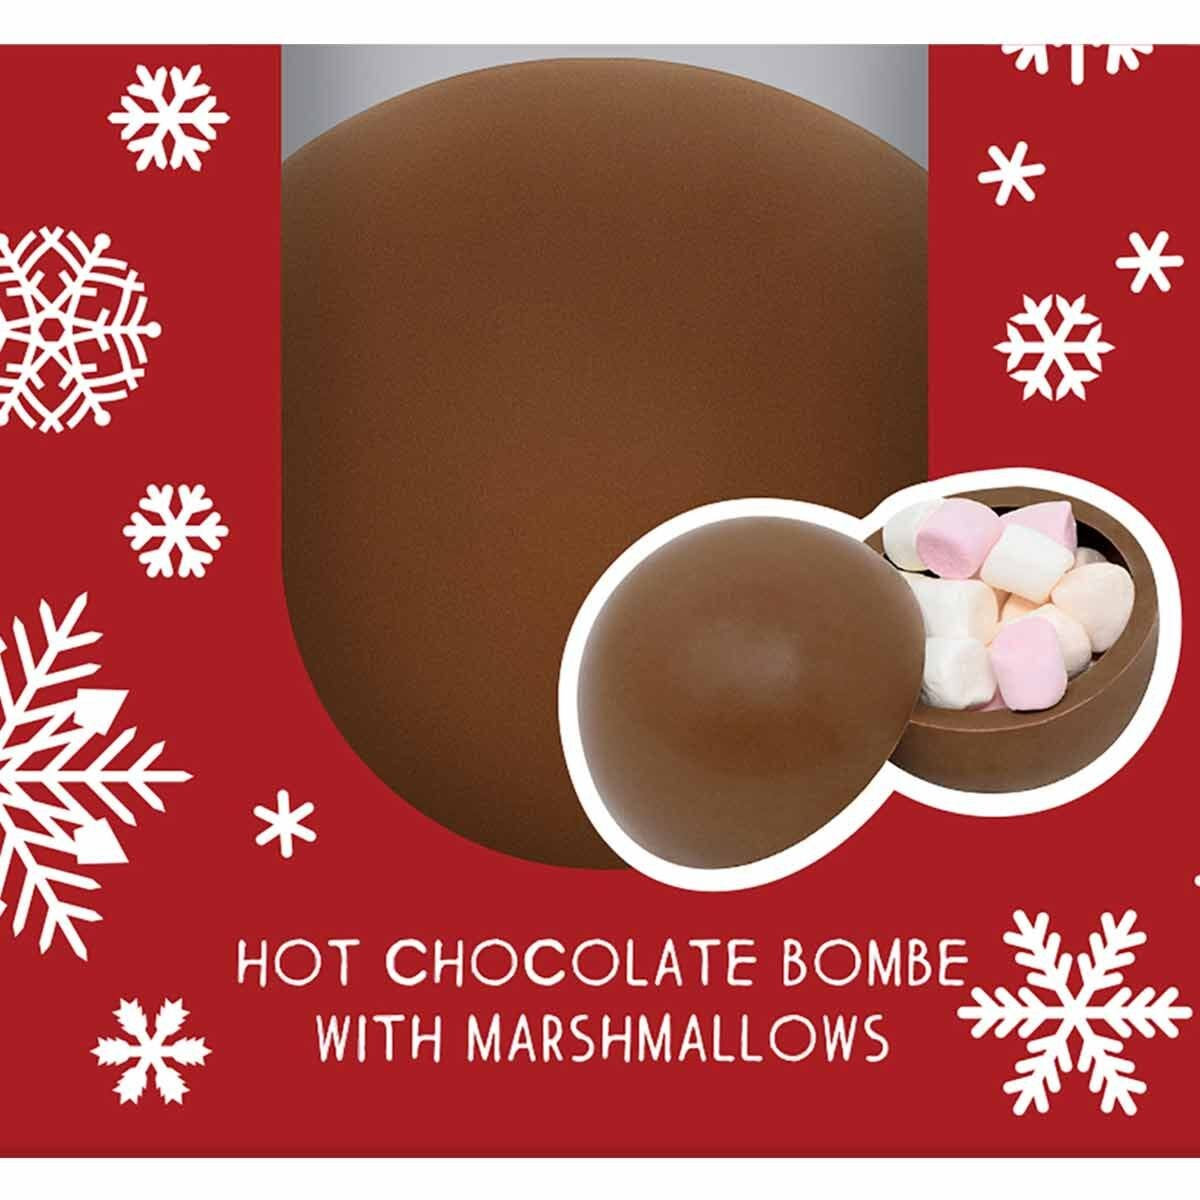 Cocoba Hot Chocolate Bombe with Marshmallows